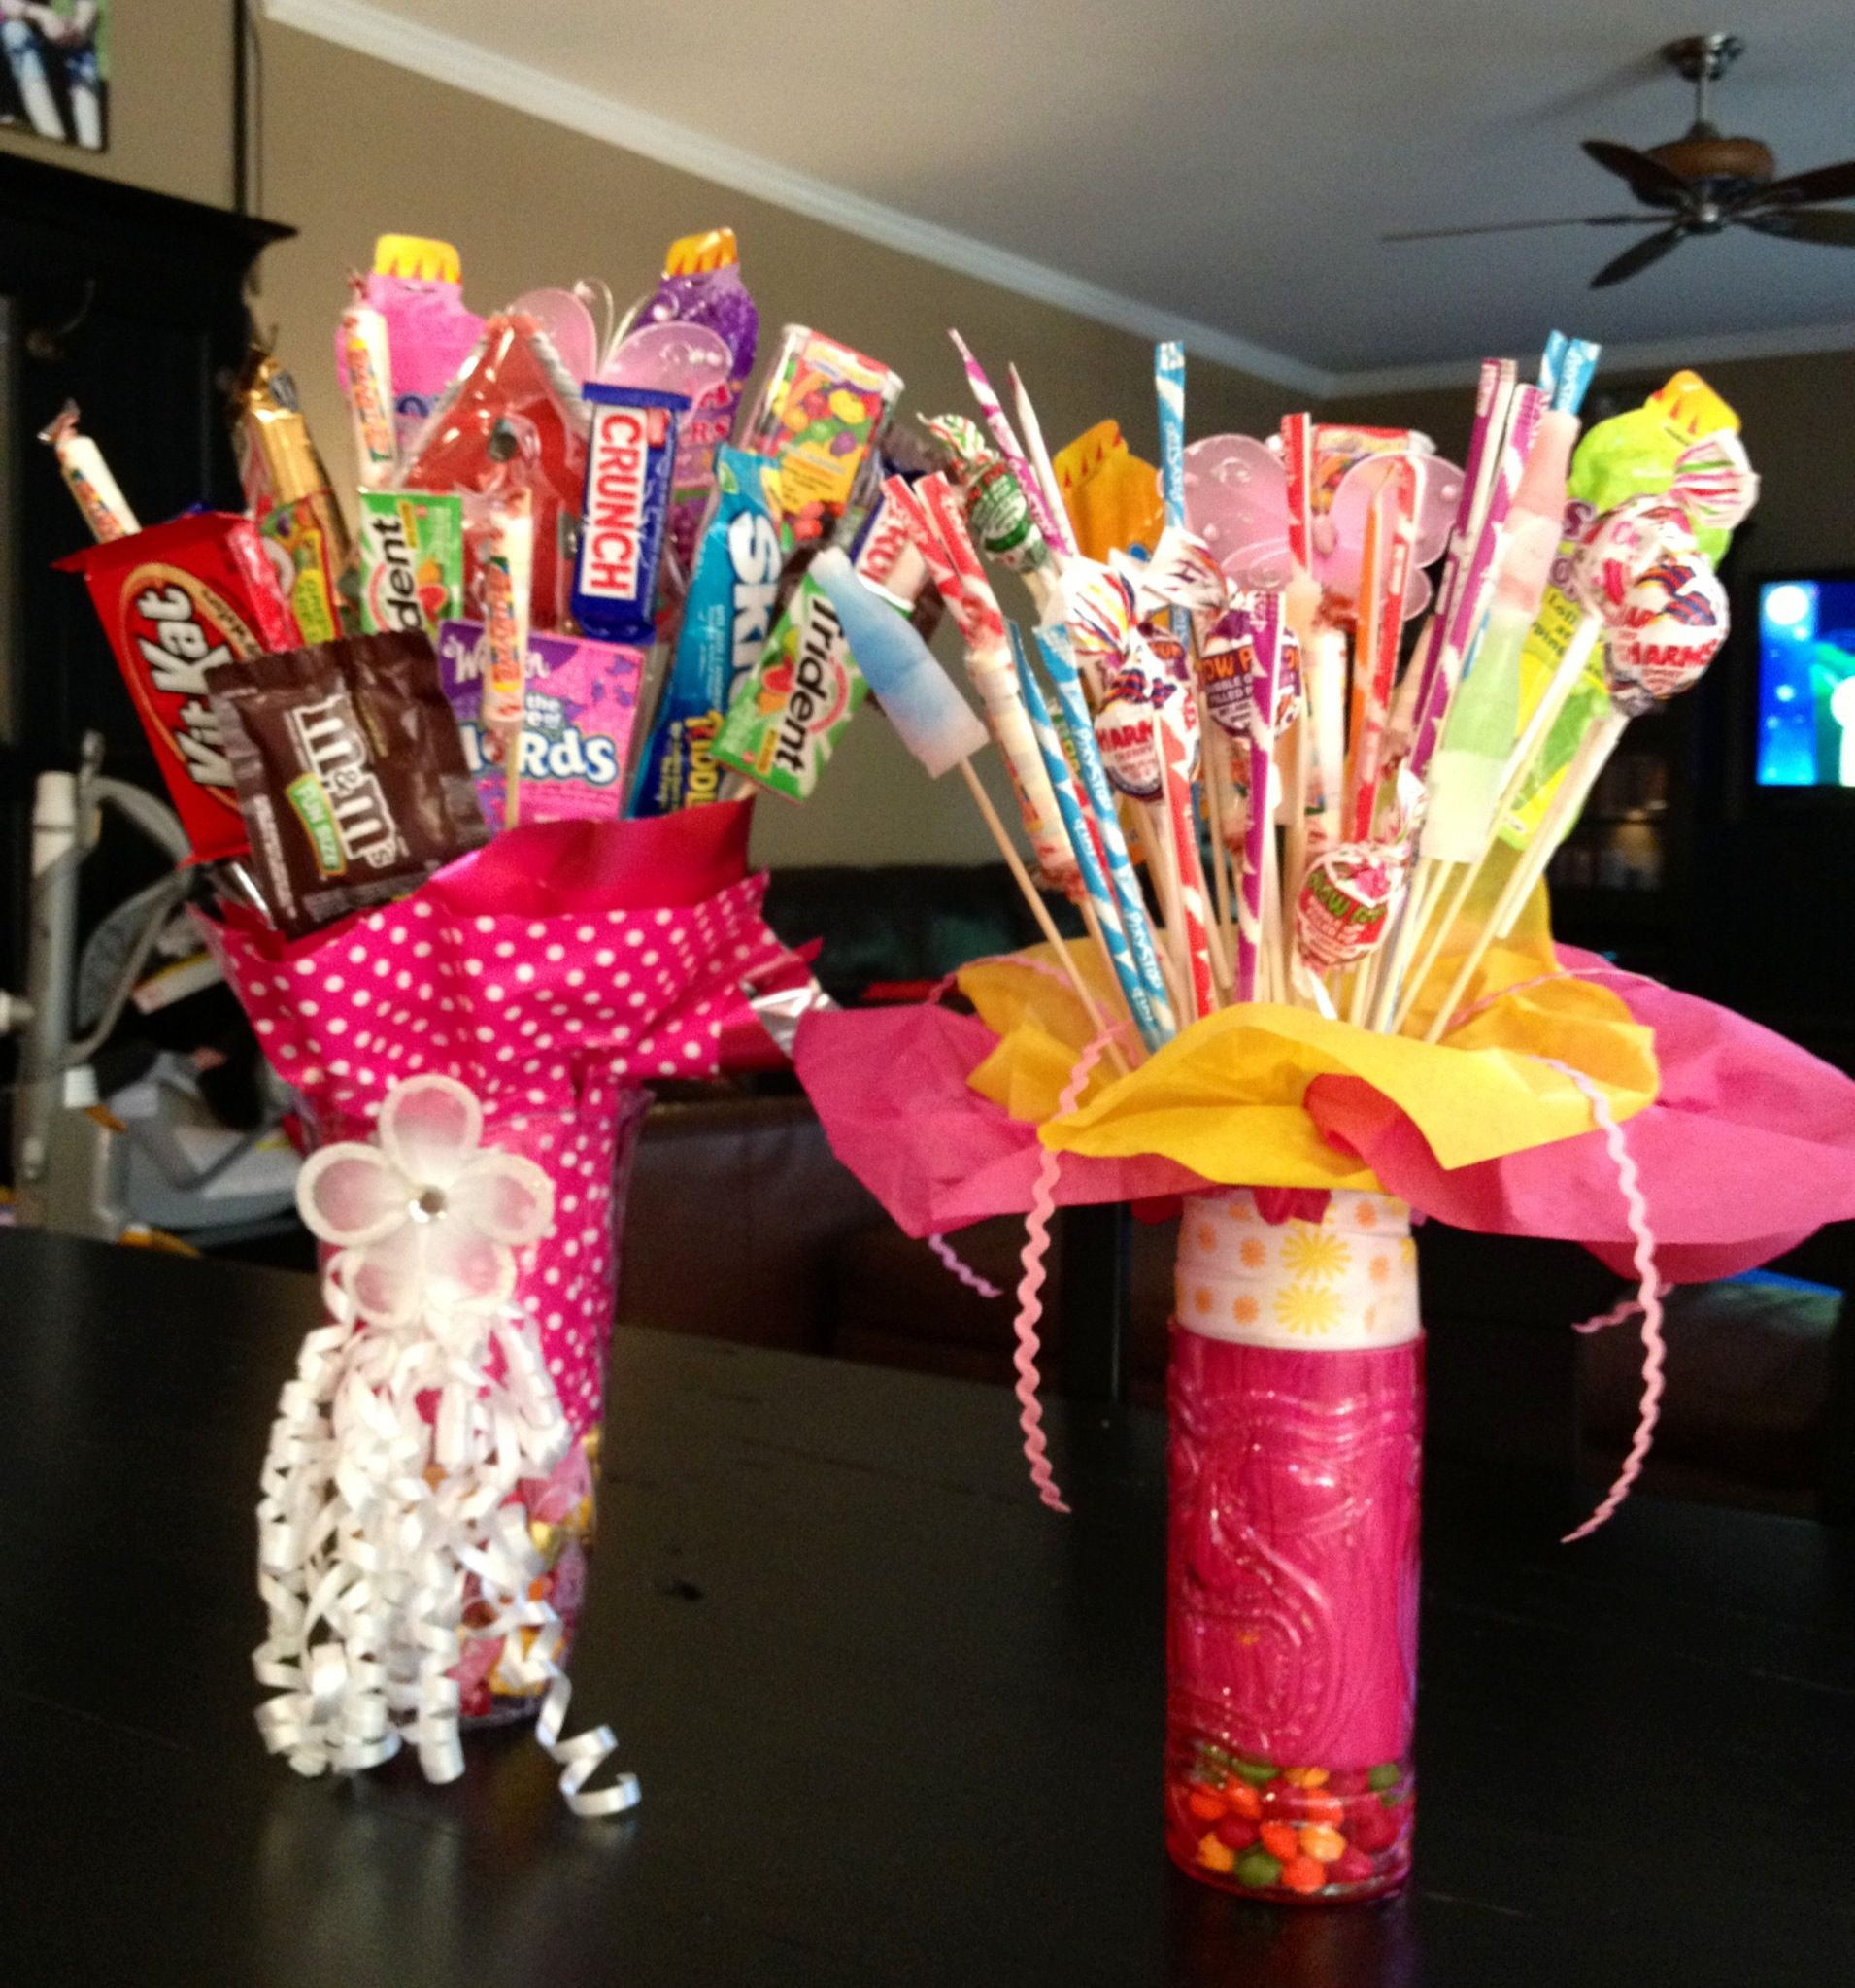 Candy bouquets for 5th grade graduation idea for riley make it boyish riley pinterest for 6th grade graduation ideas